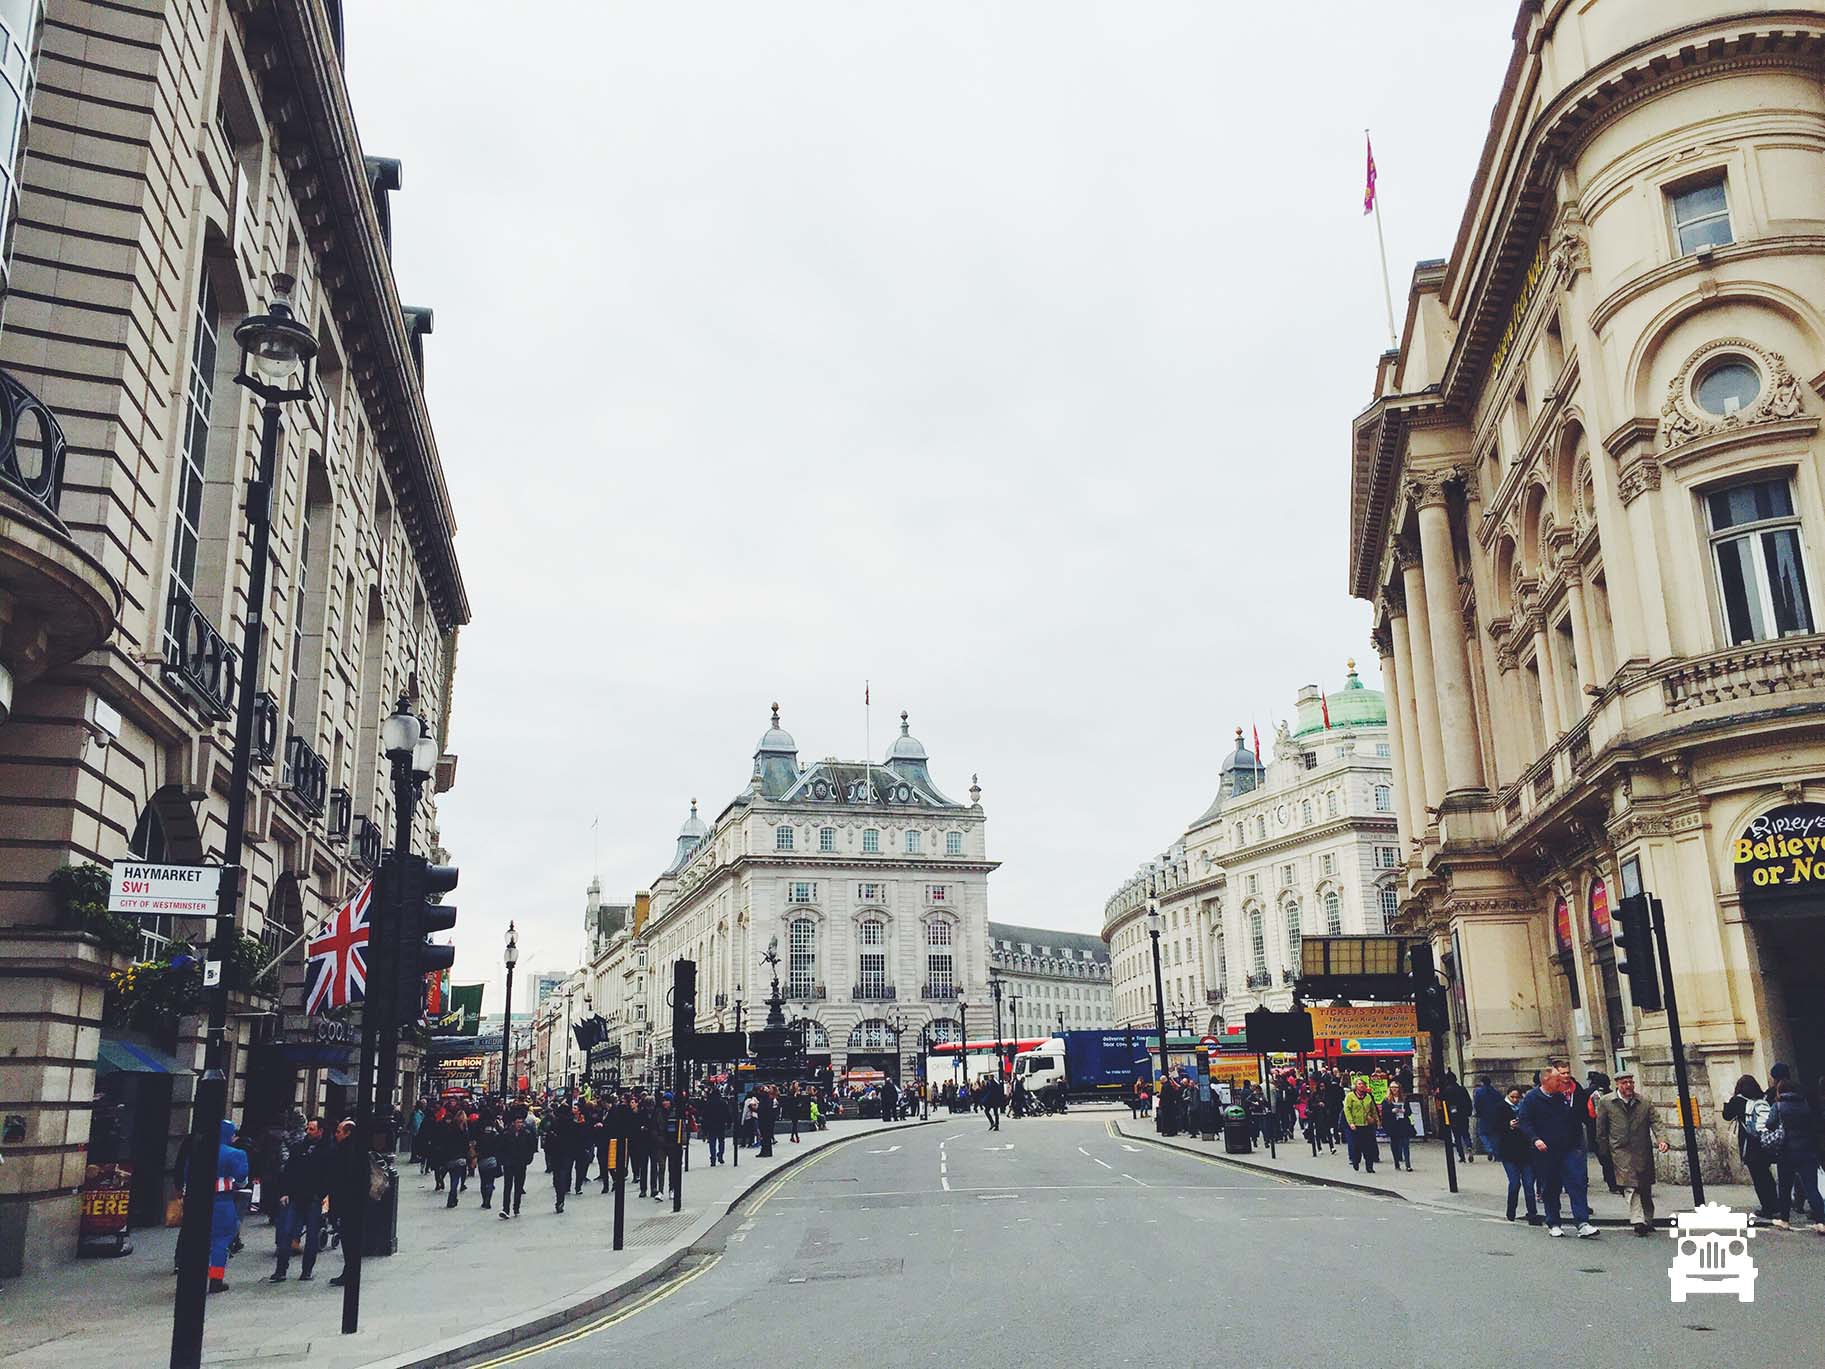 One of the nicest parts of London we thought, Picadilly Circus